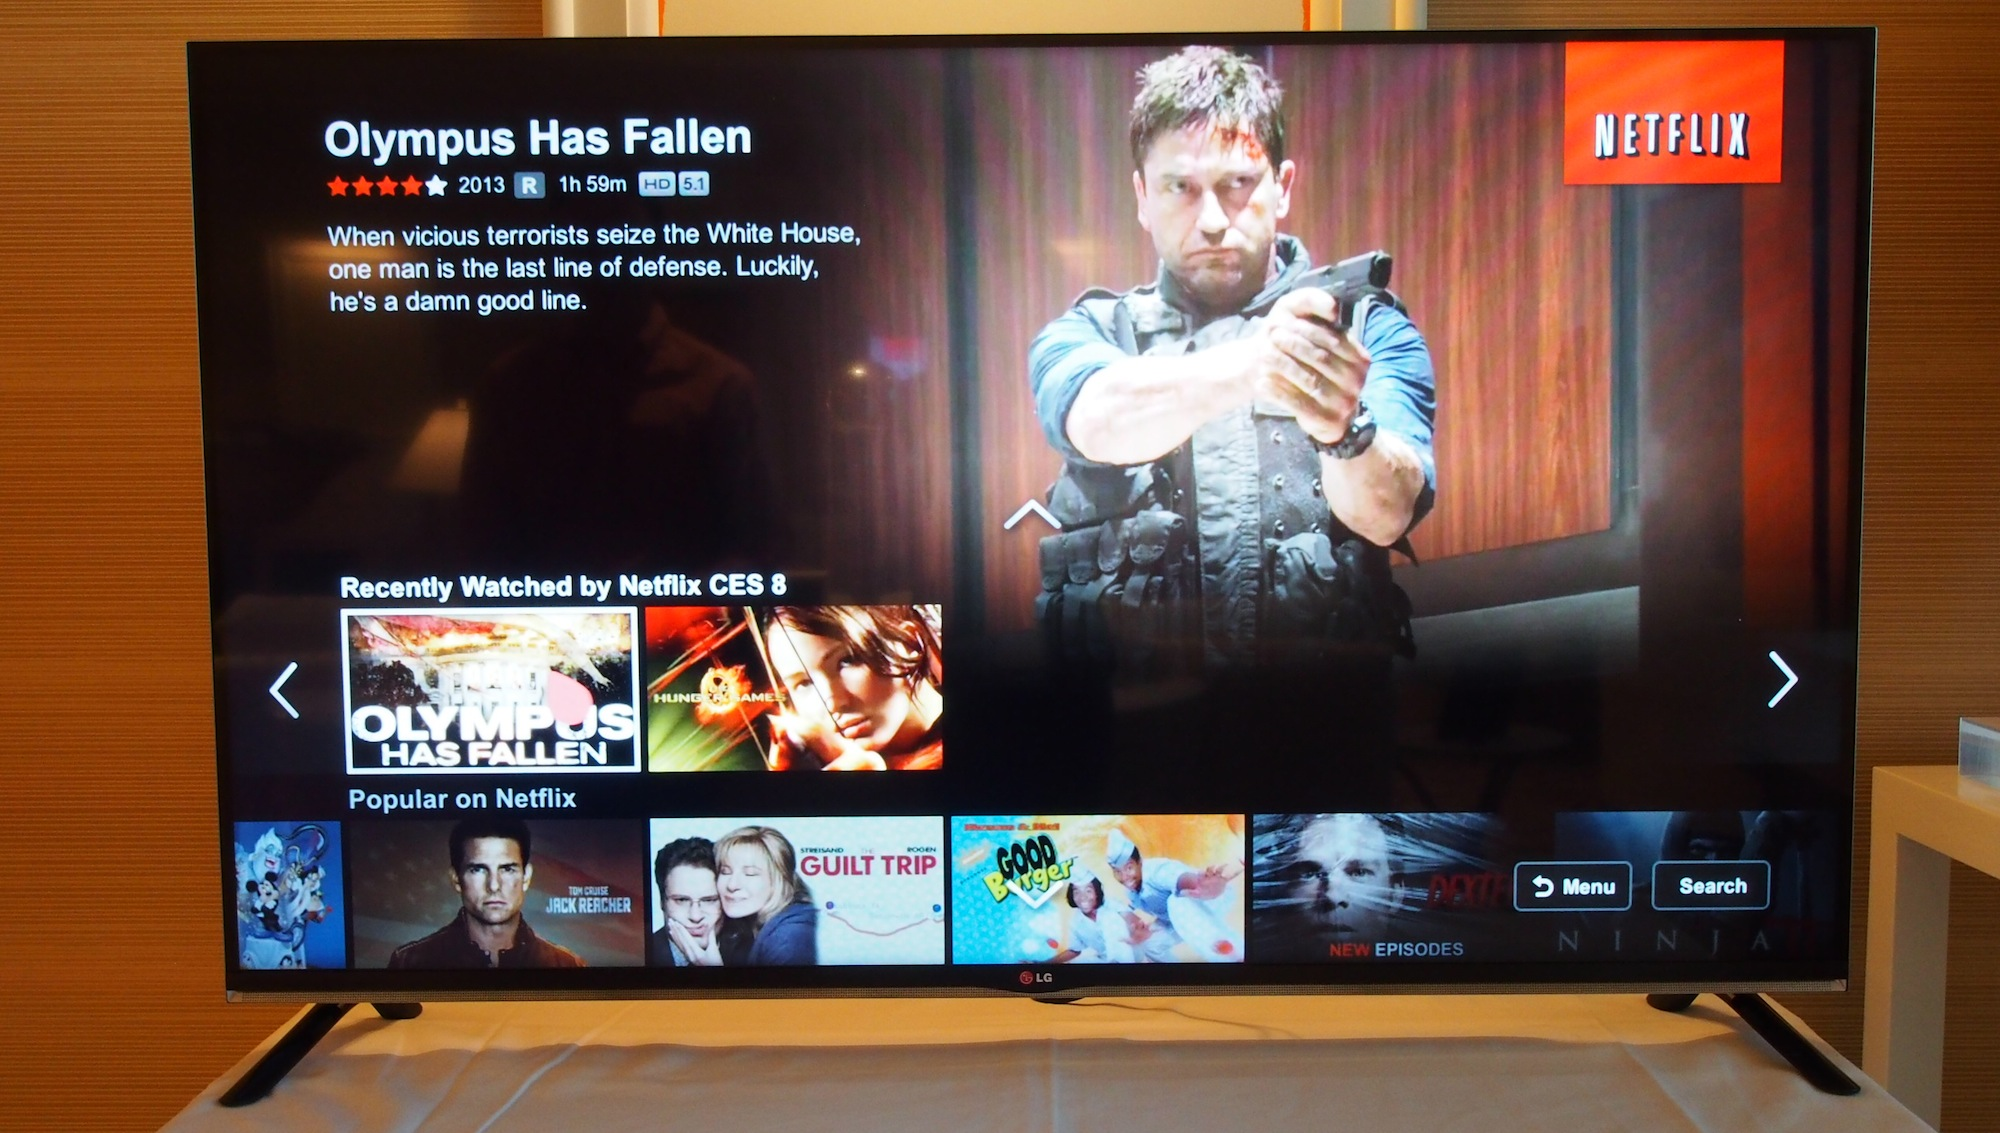 It uses more than twice the bandwidth of HD, but LG's 4K Netflix-enabled TV is pretty sweet